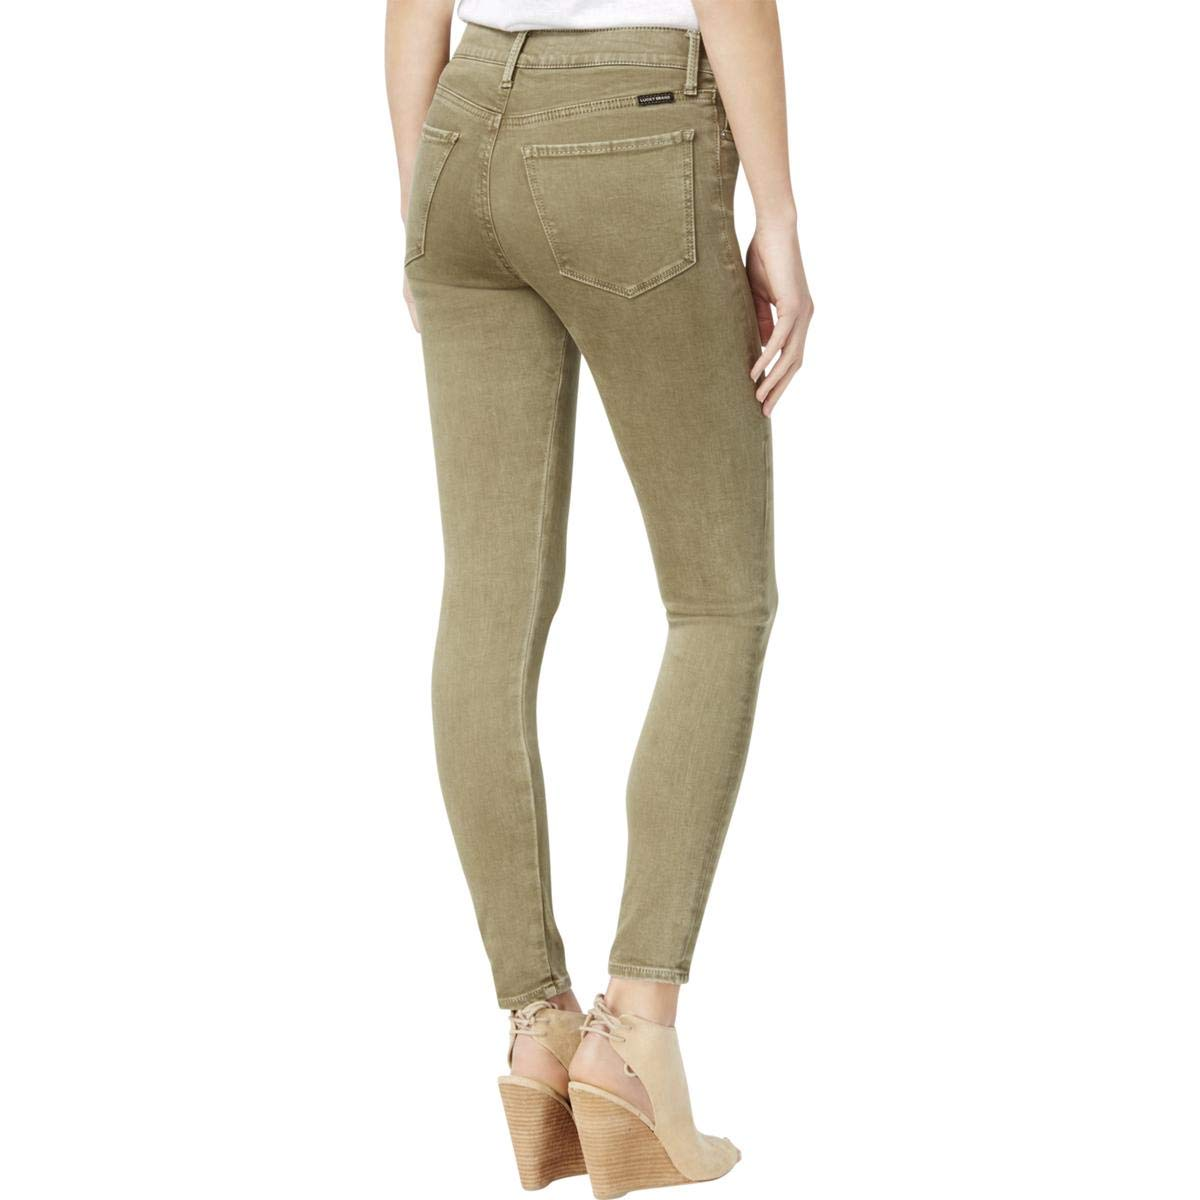 Lucky Brand Womens Brooke Legging Jean in Mojave Valley